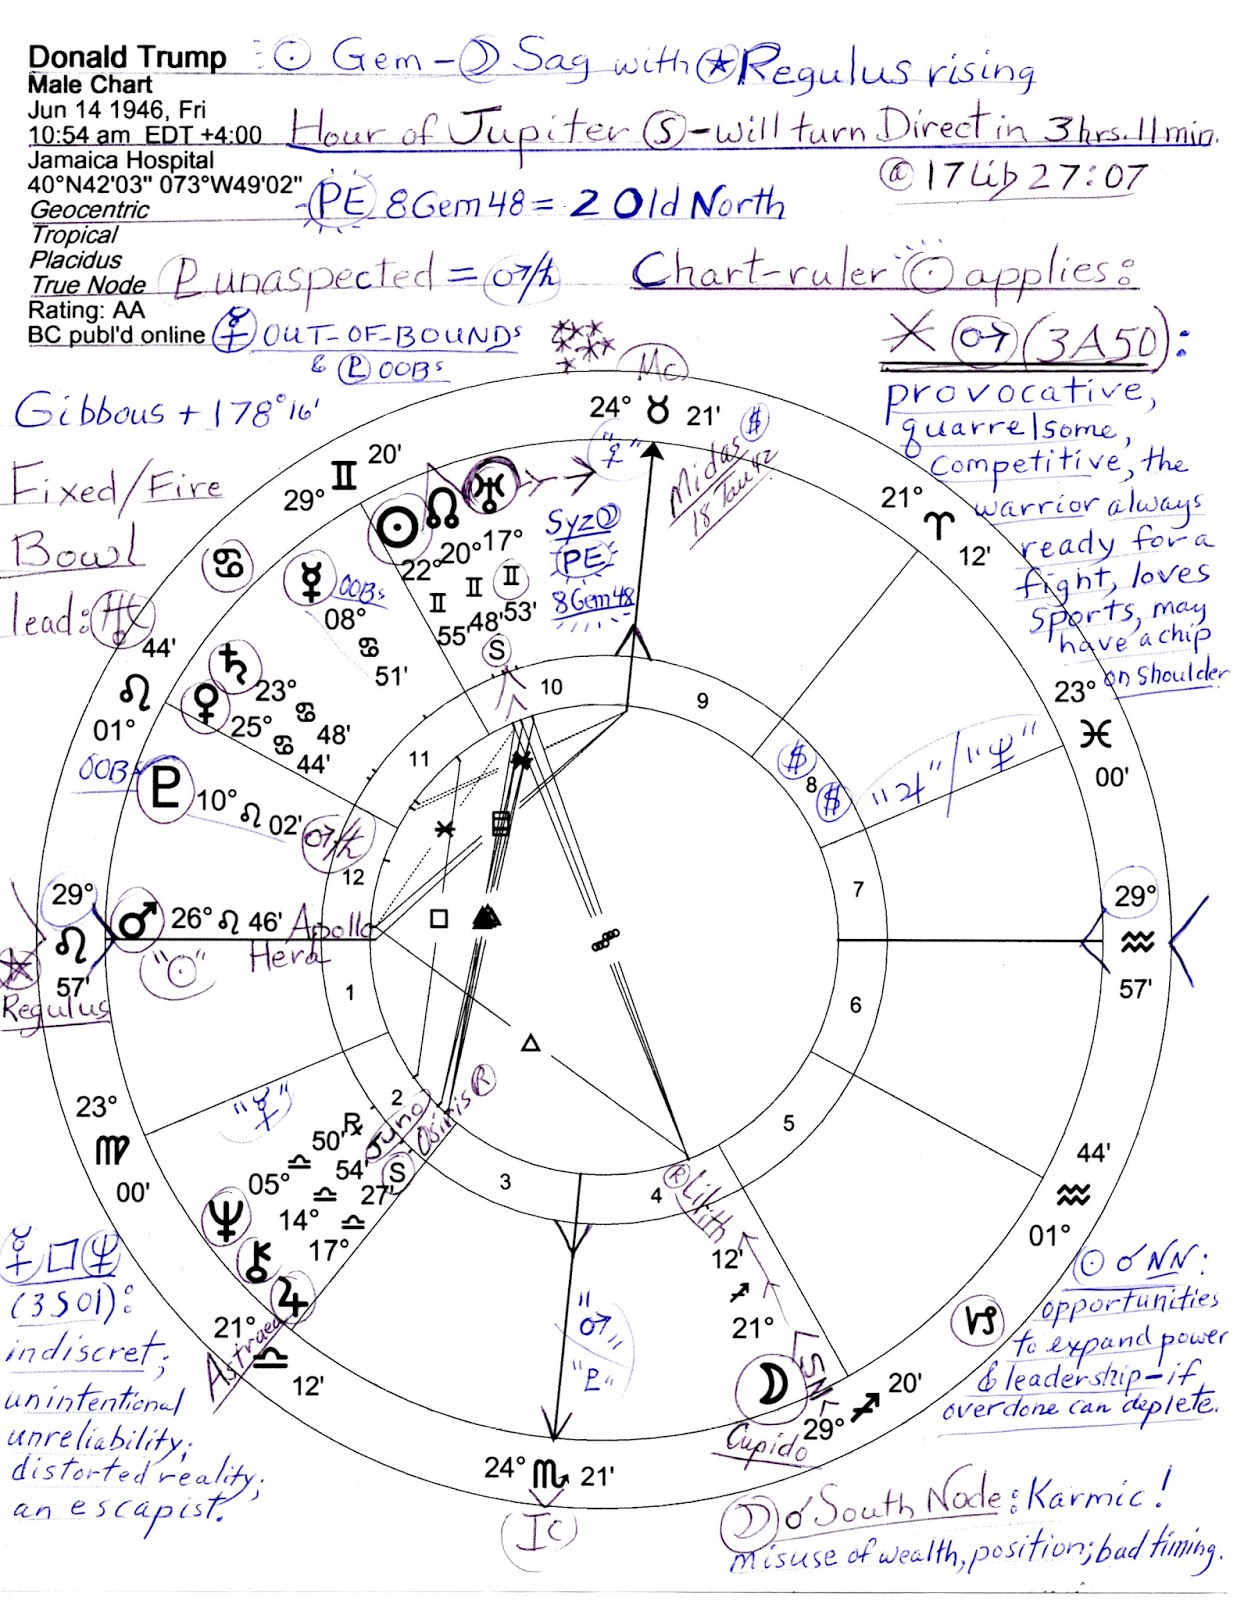 If you wish, check out details concerning his chart and personality by ...